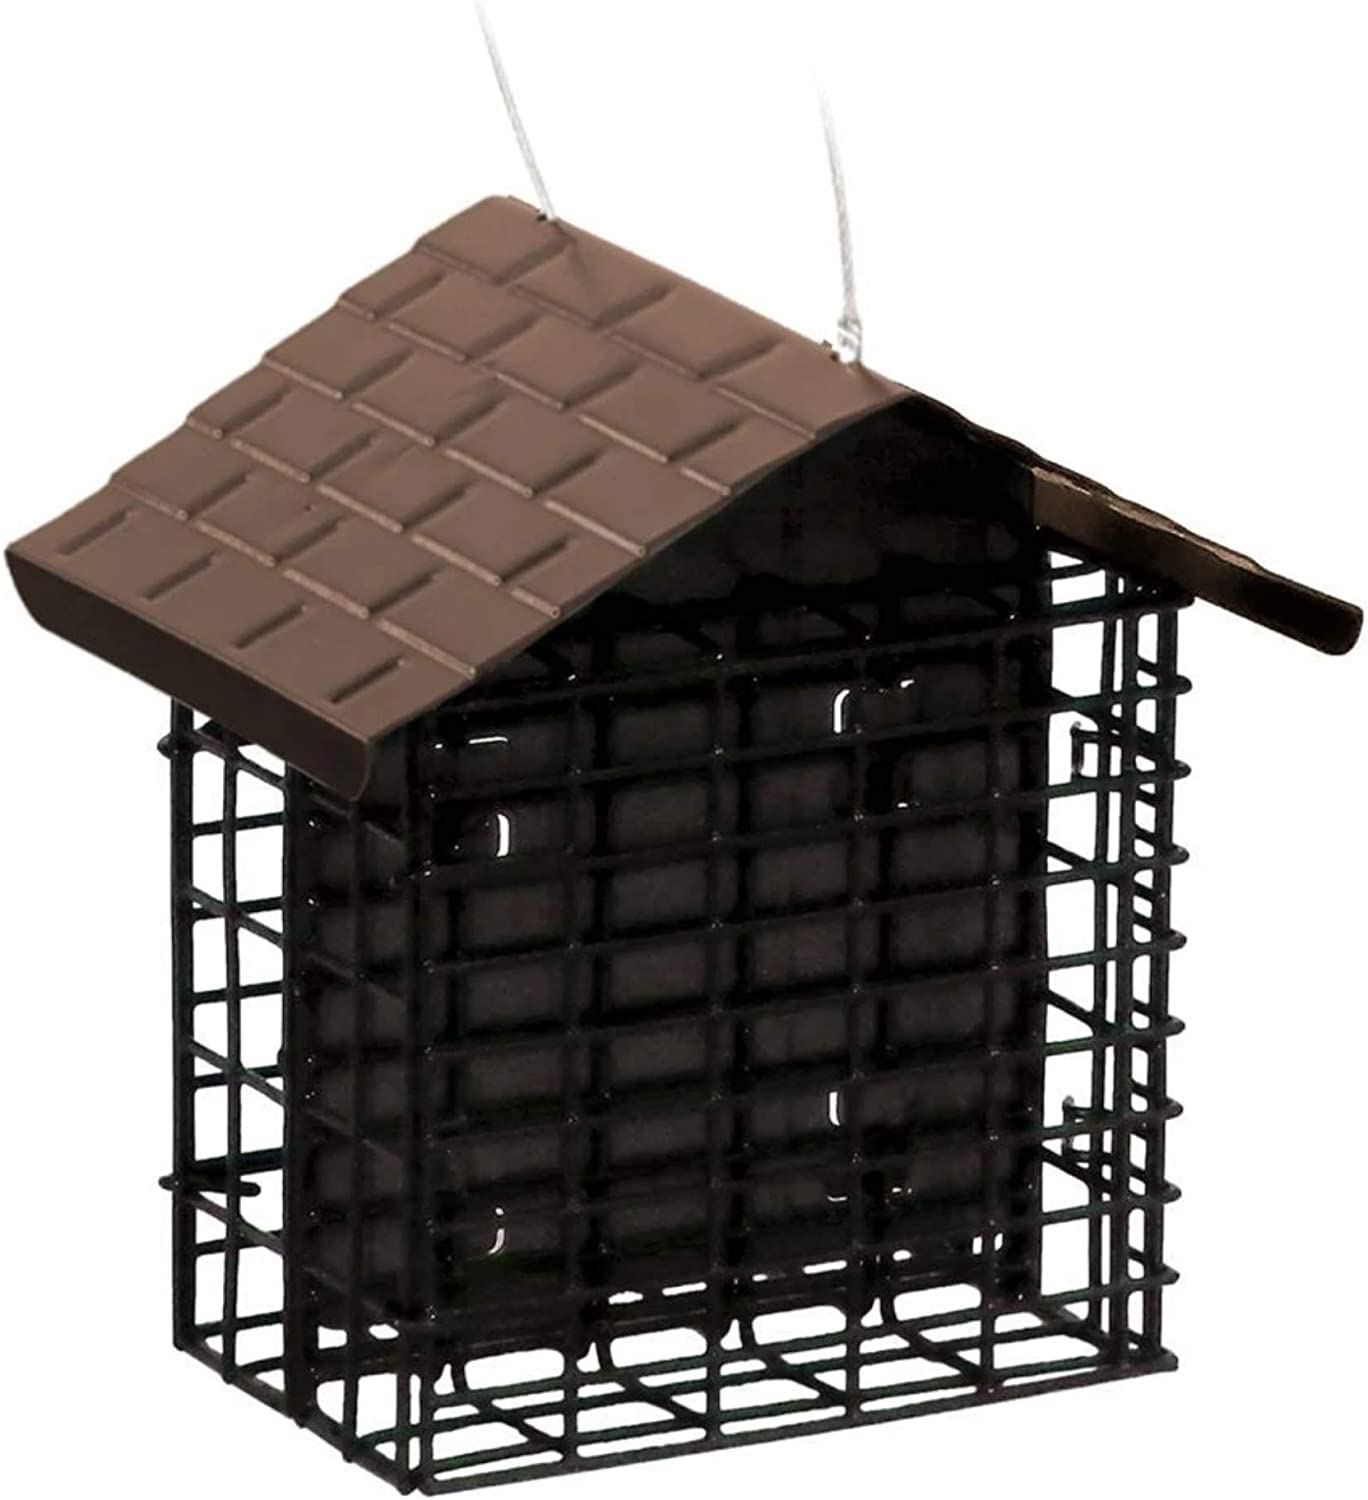 More Birds 38070 Stokes Select Double Feeder with Metal Roof, Two Suet Capaci, Cakes, Black